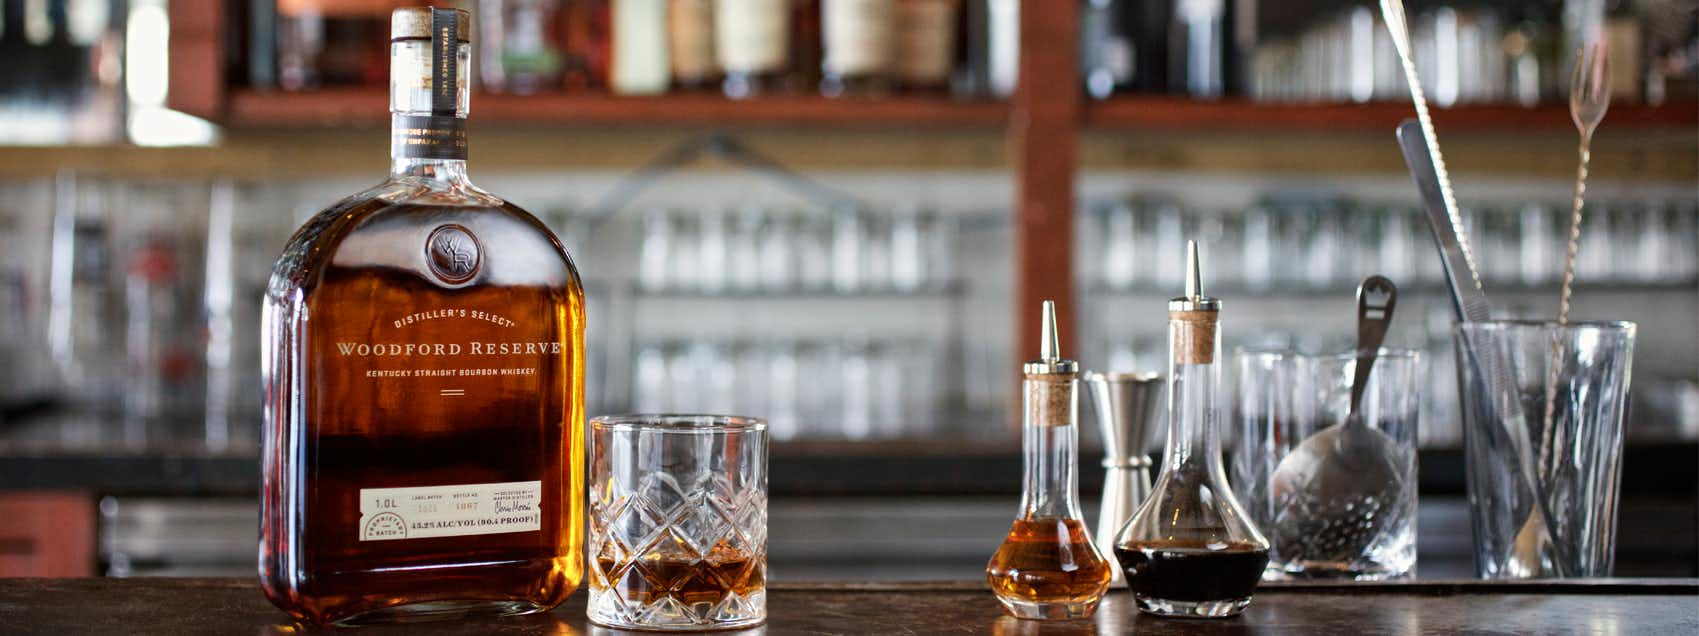 Woodford Reserve Neat